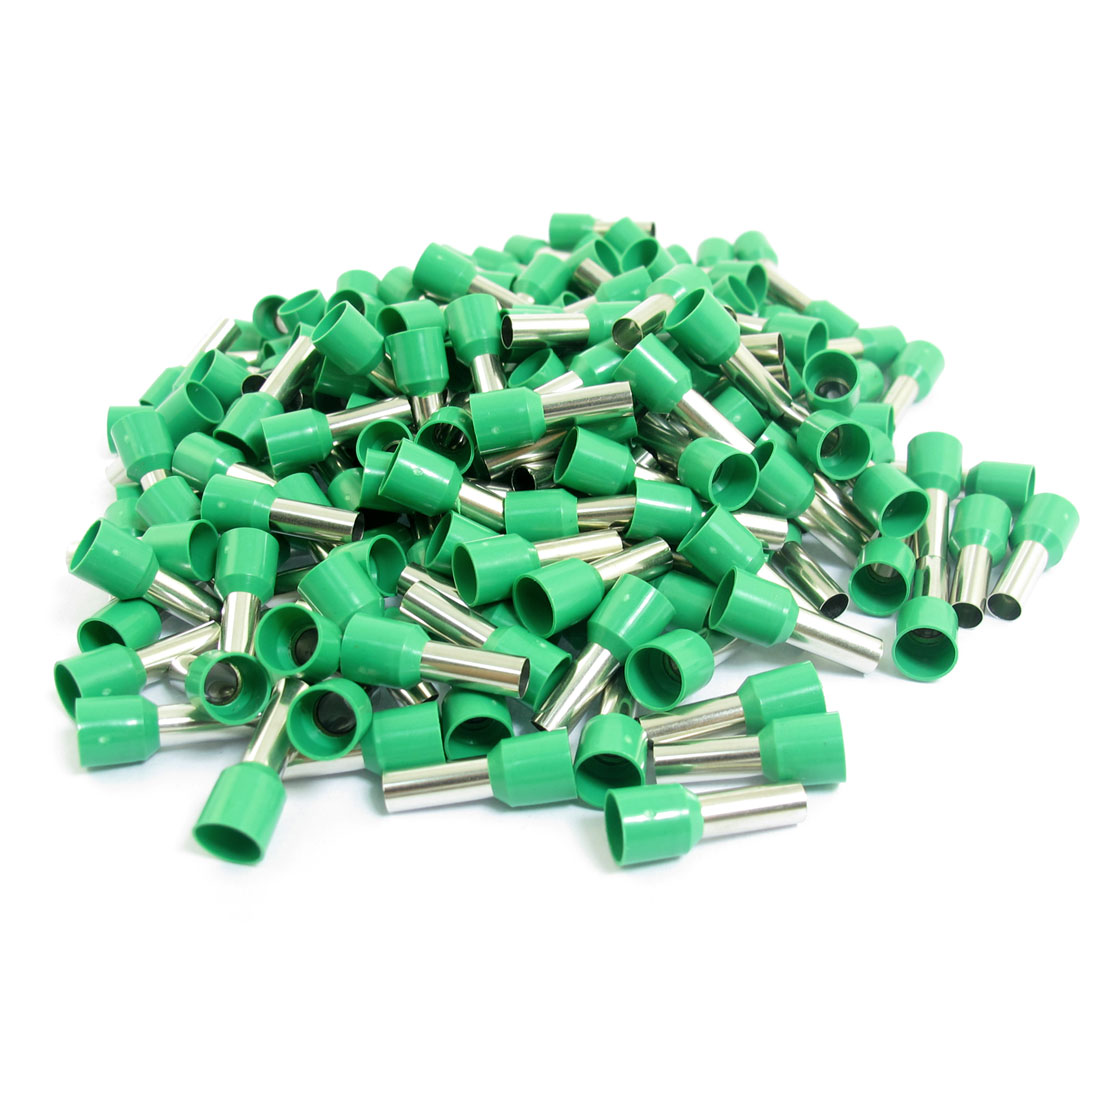 200pcs E1012 8AWG Green Plastic Tube Tublar Style Wire Crimp Insulated Cord End Terminal Connector